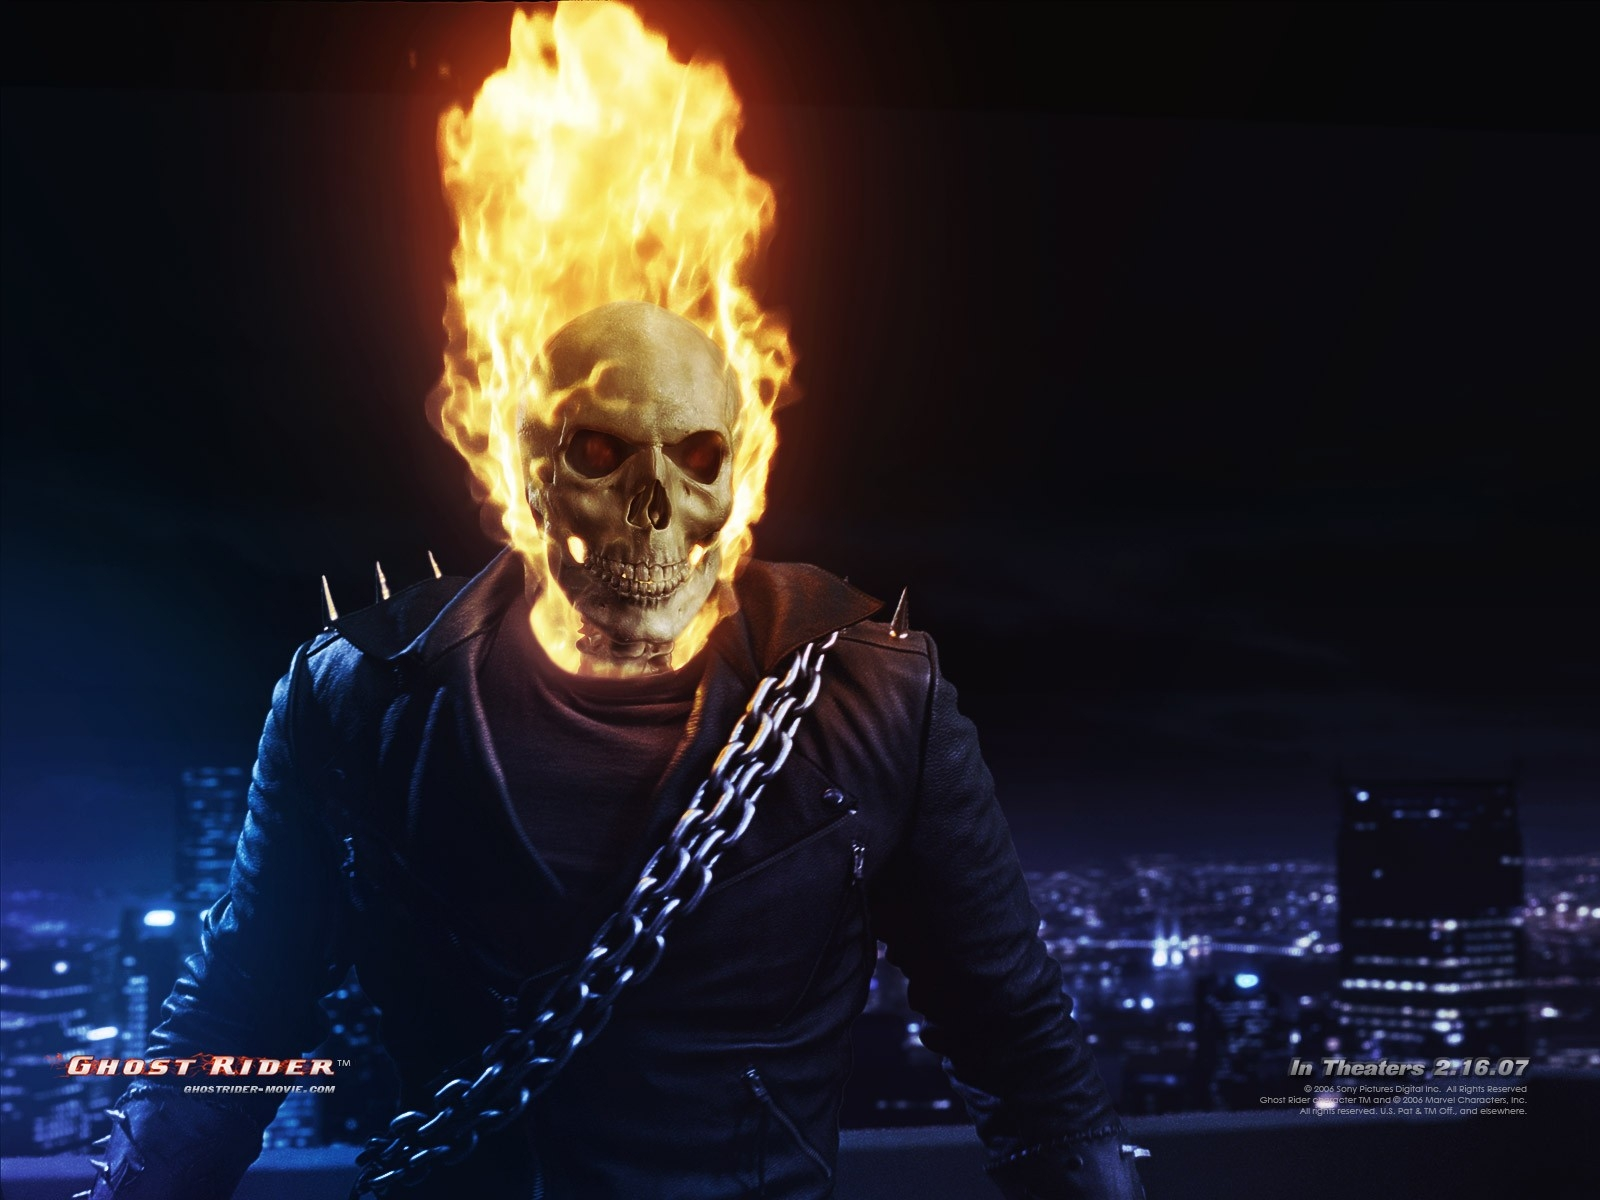 http://1.bp.blogspot.com/-F2YIckHCotQ/ThloG3T8vOI/AAAAAAAAAB0/ZQQxuOp9G7M/s1600/Ghost-Rider-wallpaper-of-pc.jpg